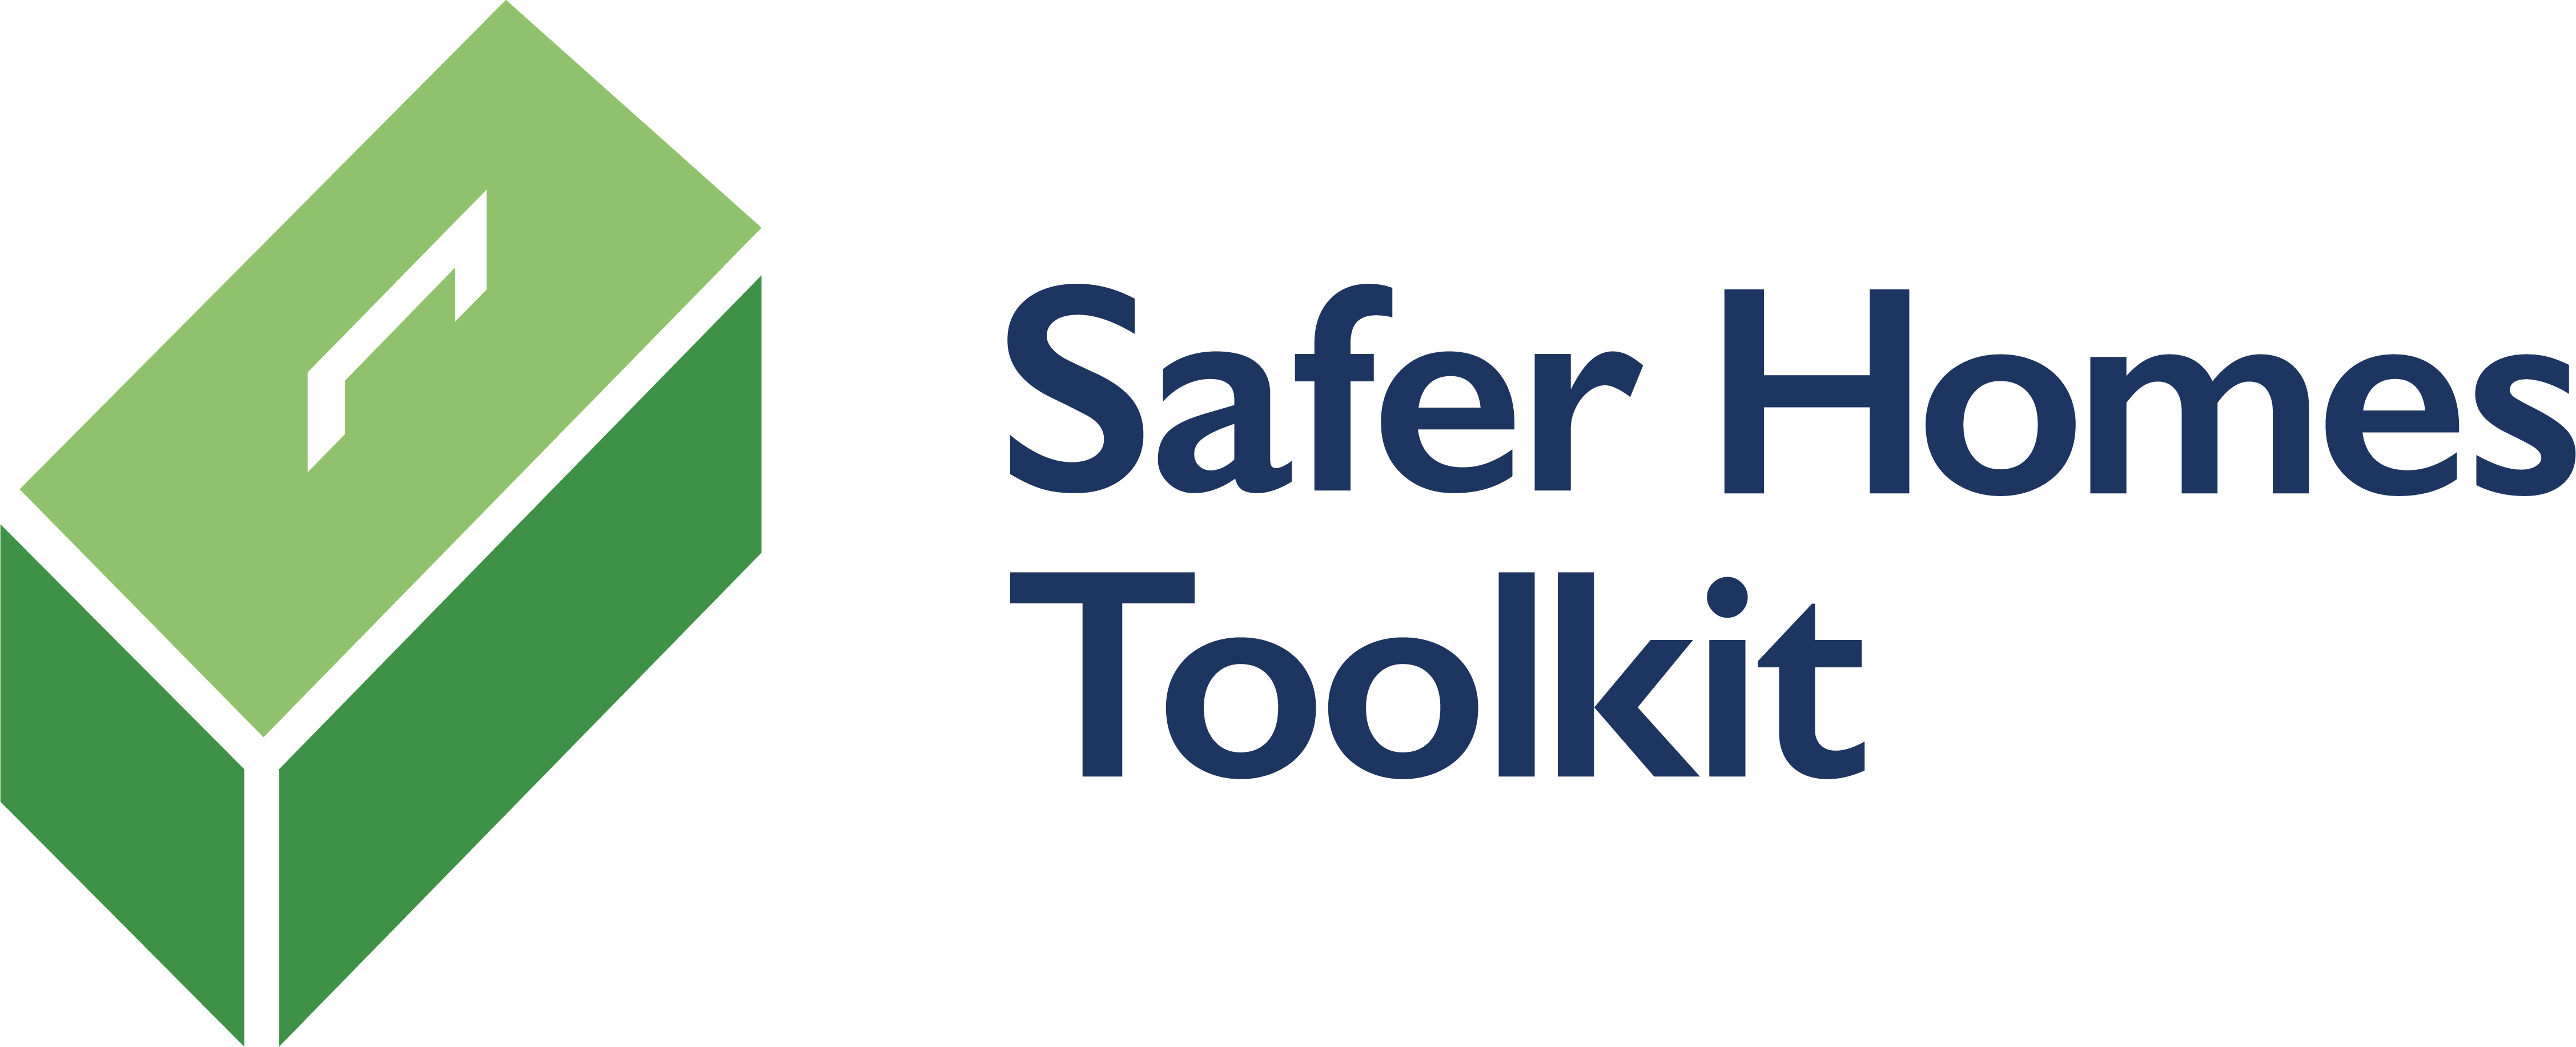 Safer Homes Toolkit